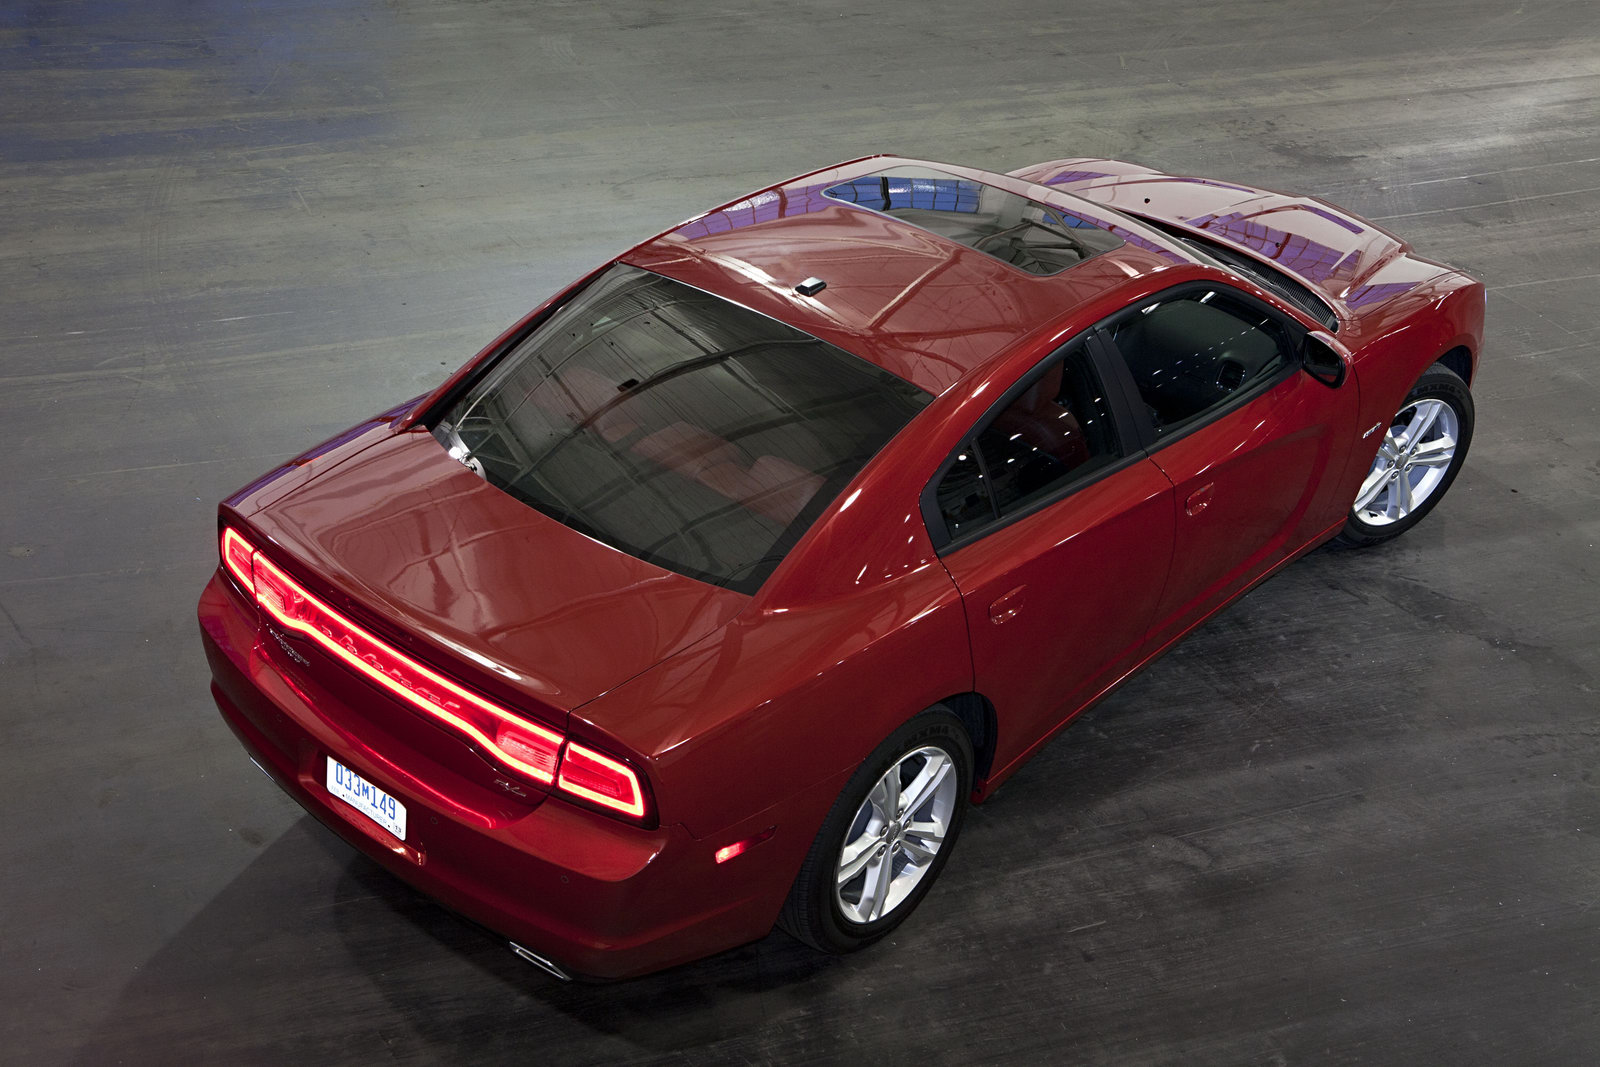 2012 Dodge Charger 5 Alfa Romeos 1.75 Liter Turbo Engine to power the New Dodge Charger TBI